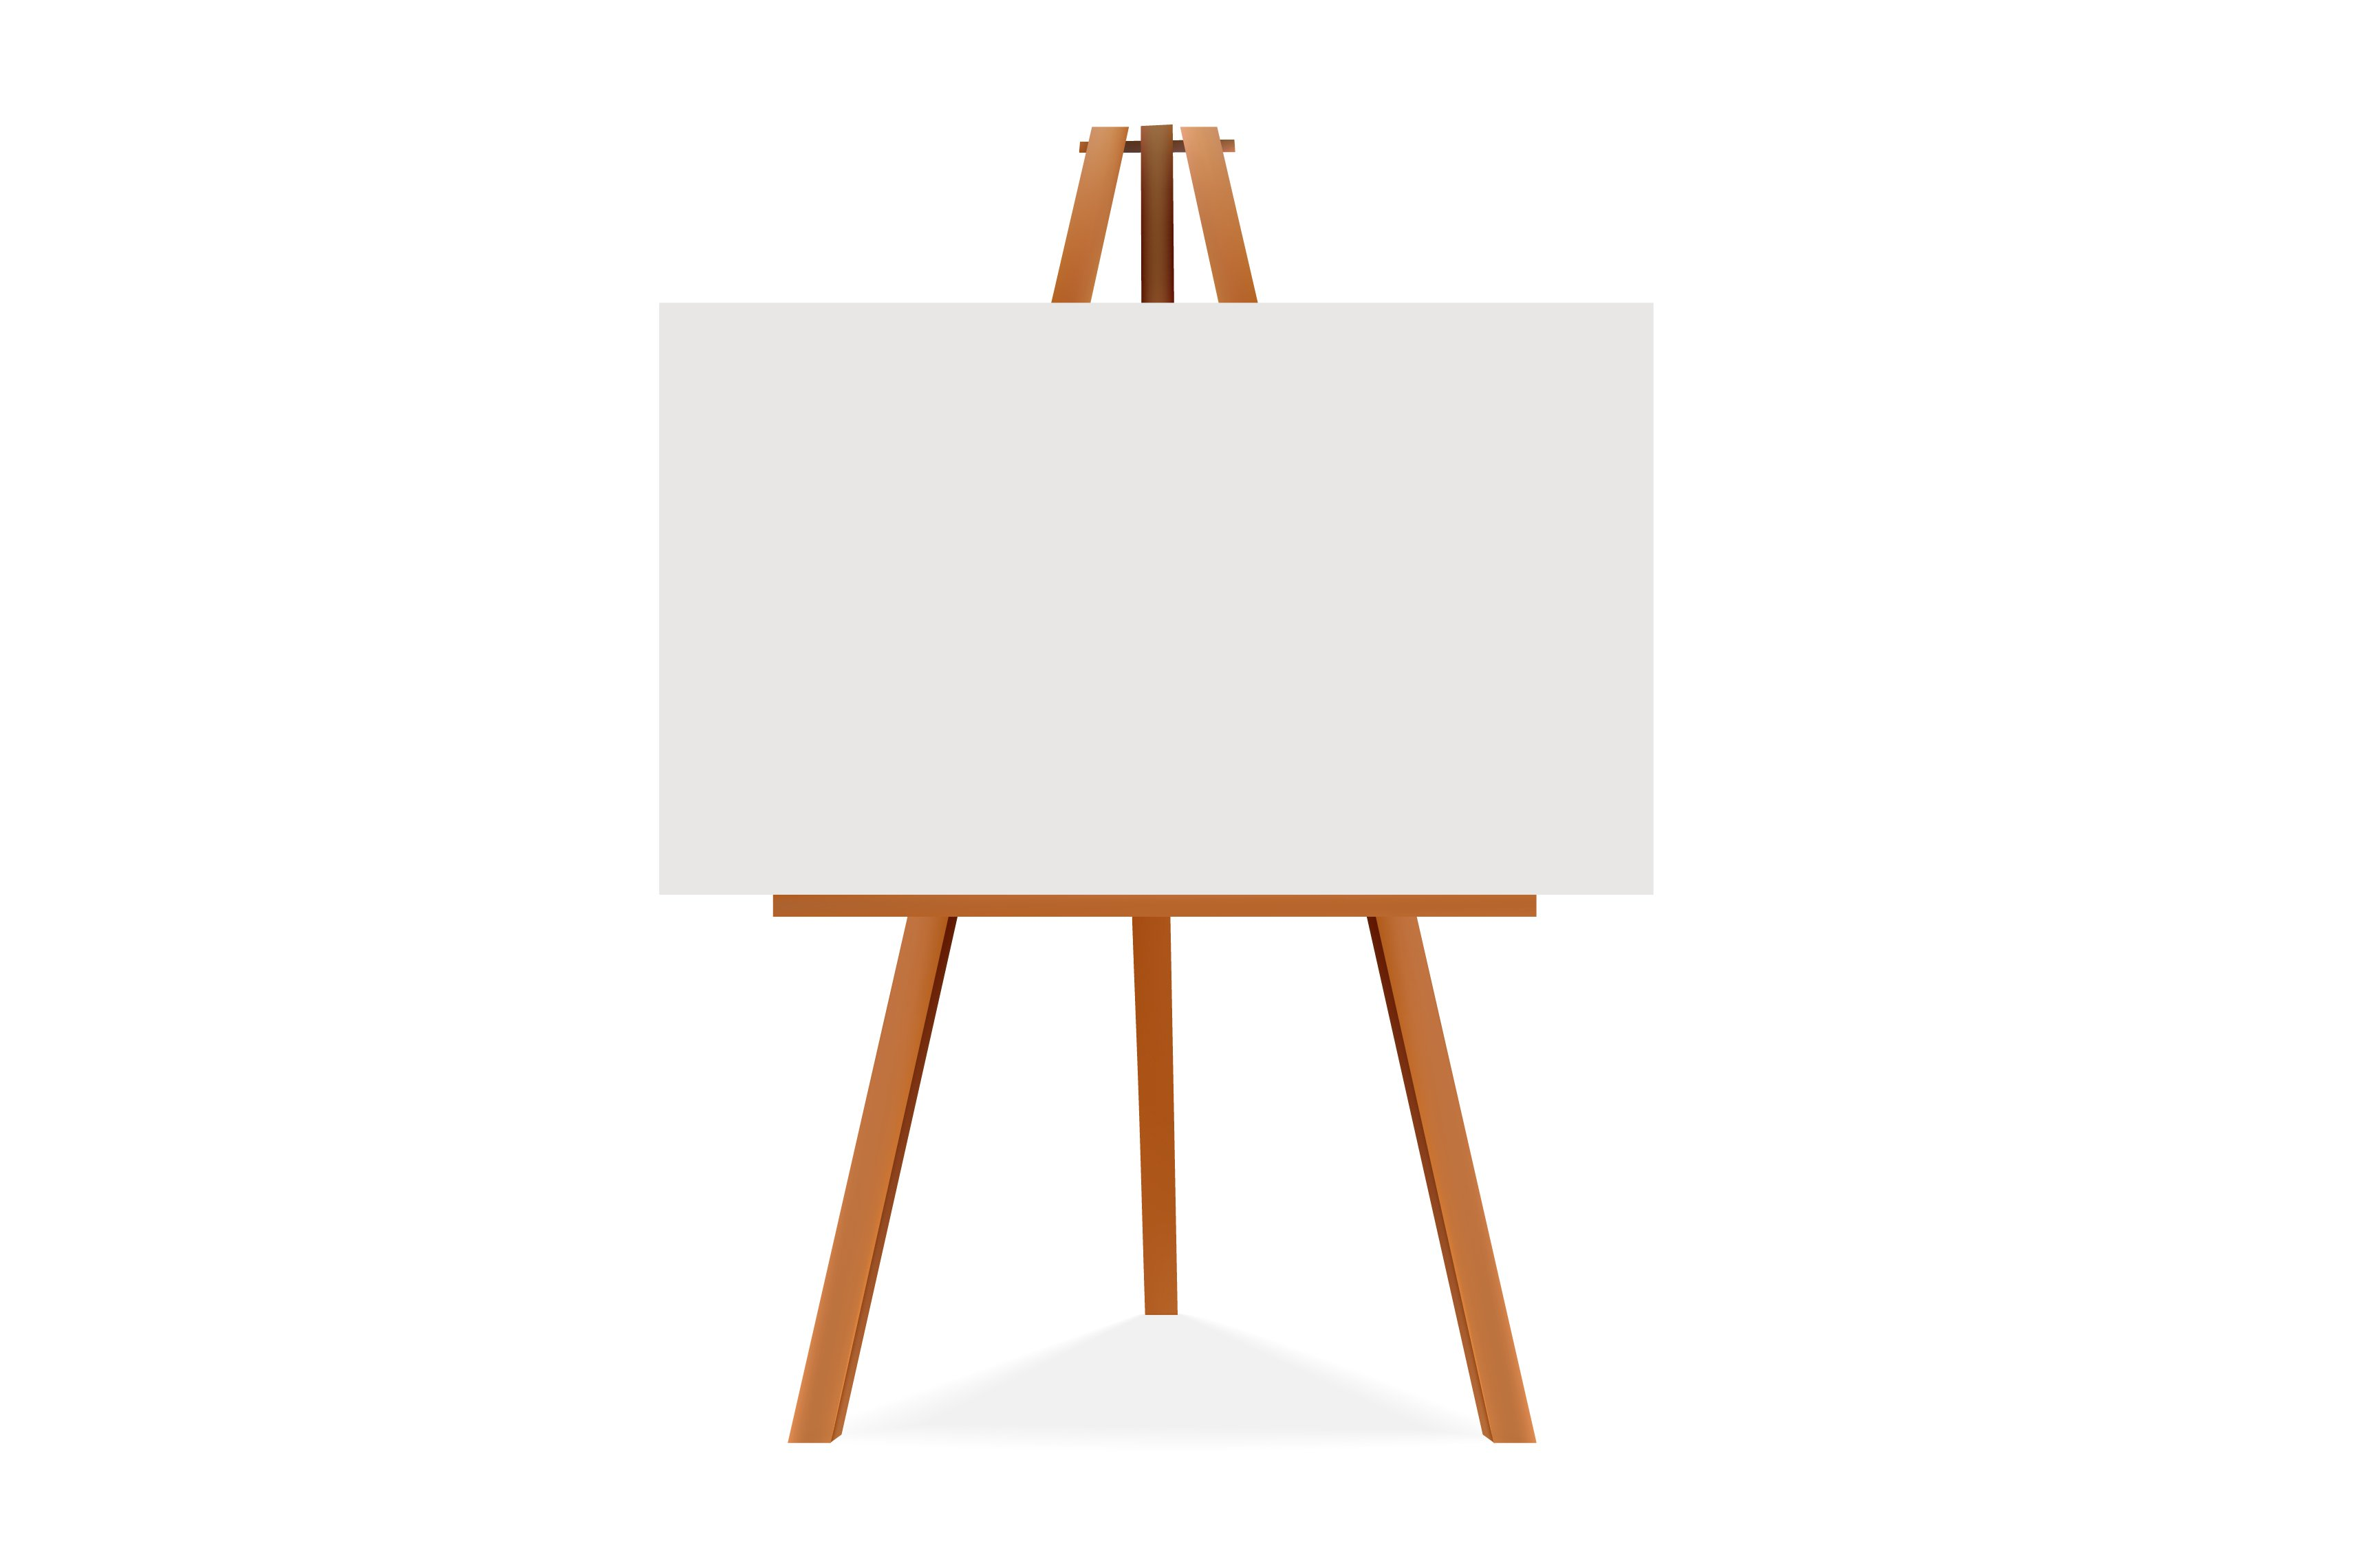 easel illustration graphics creative market